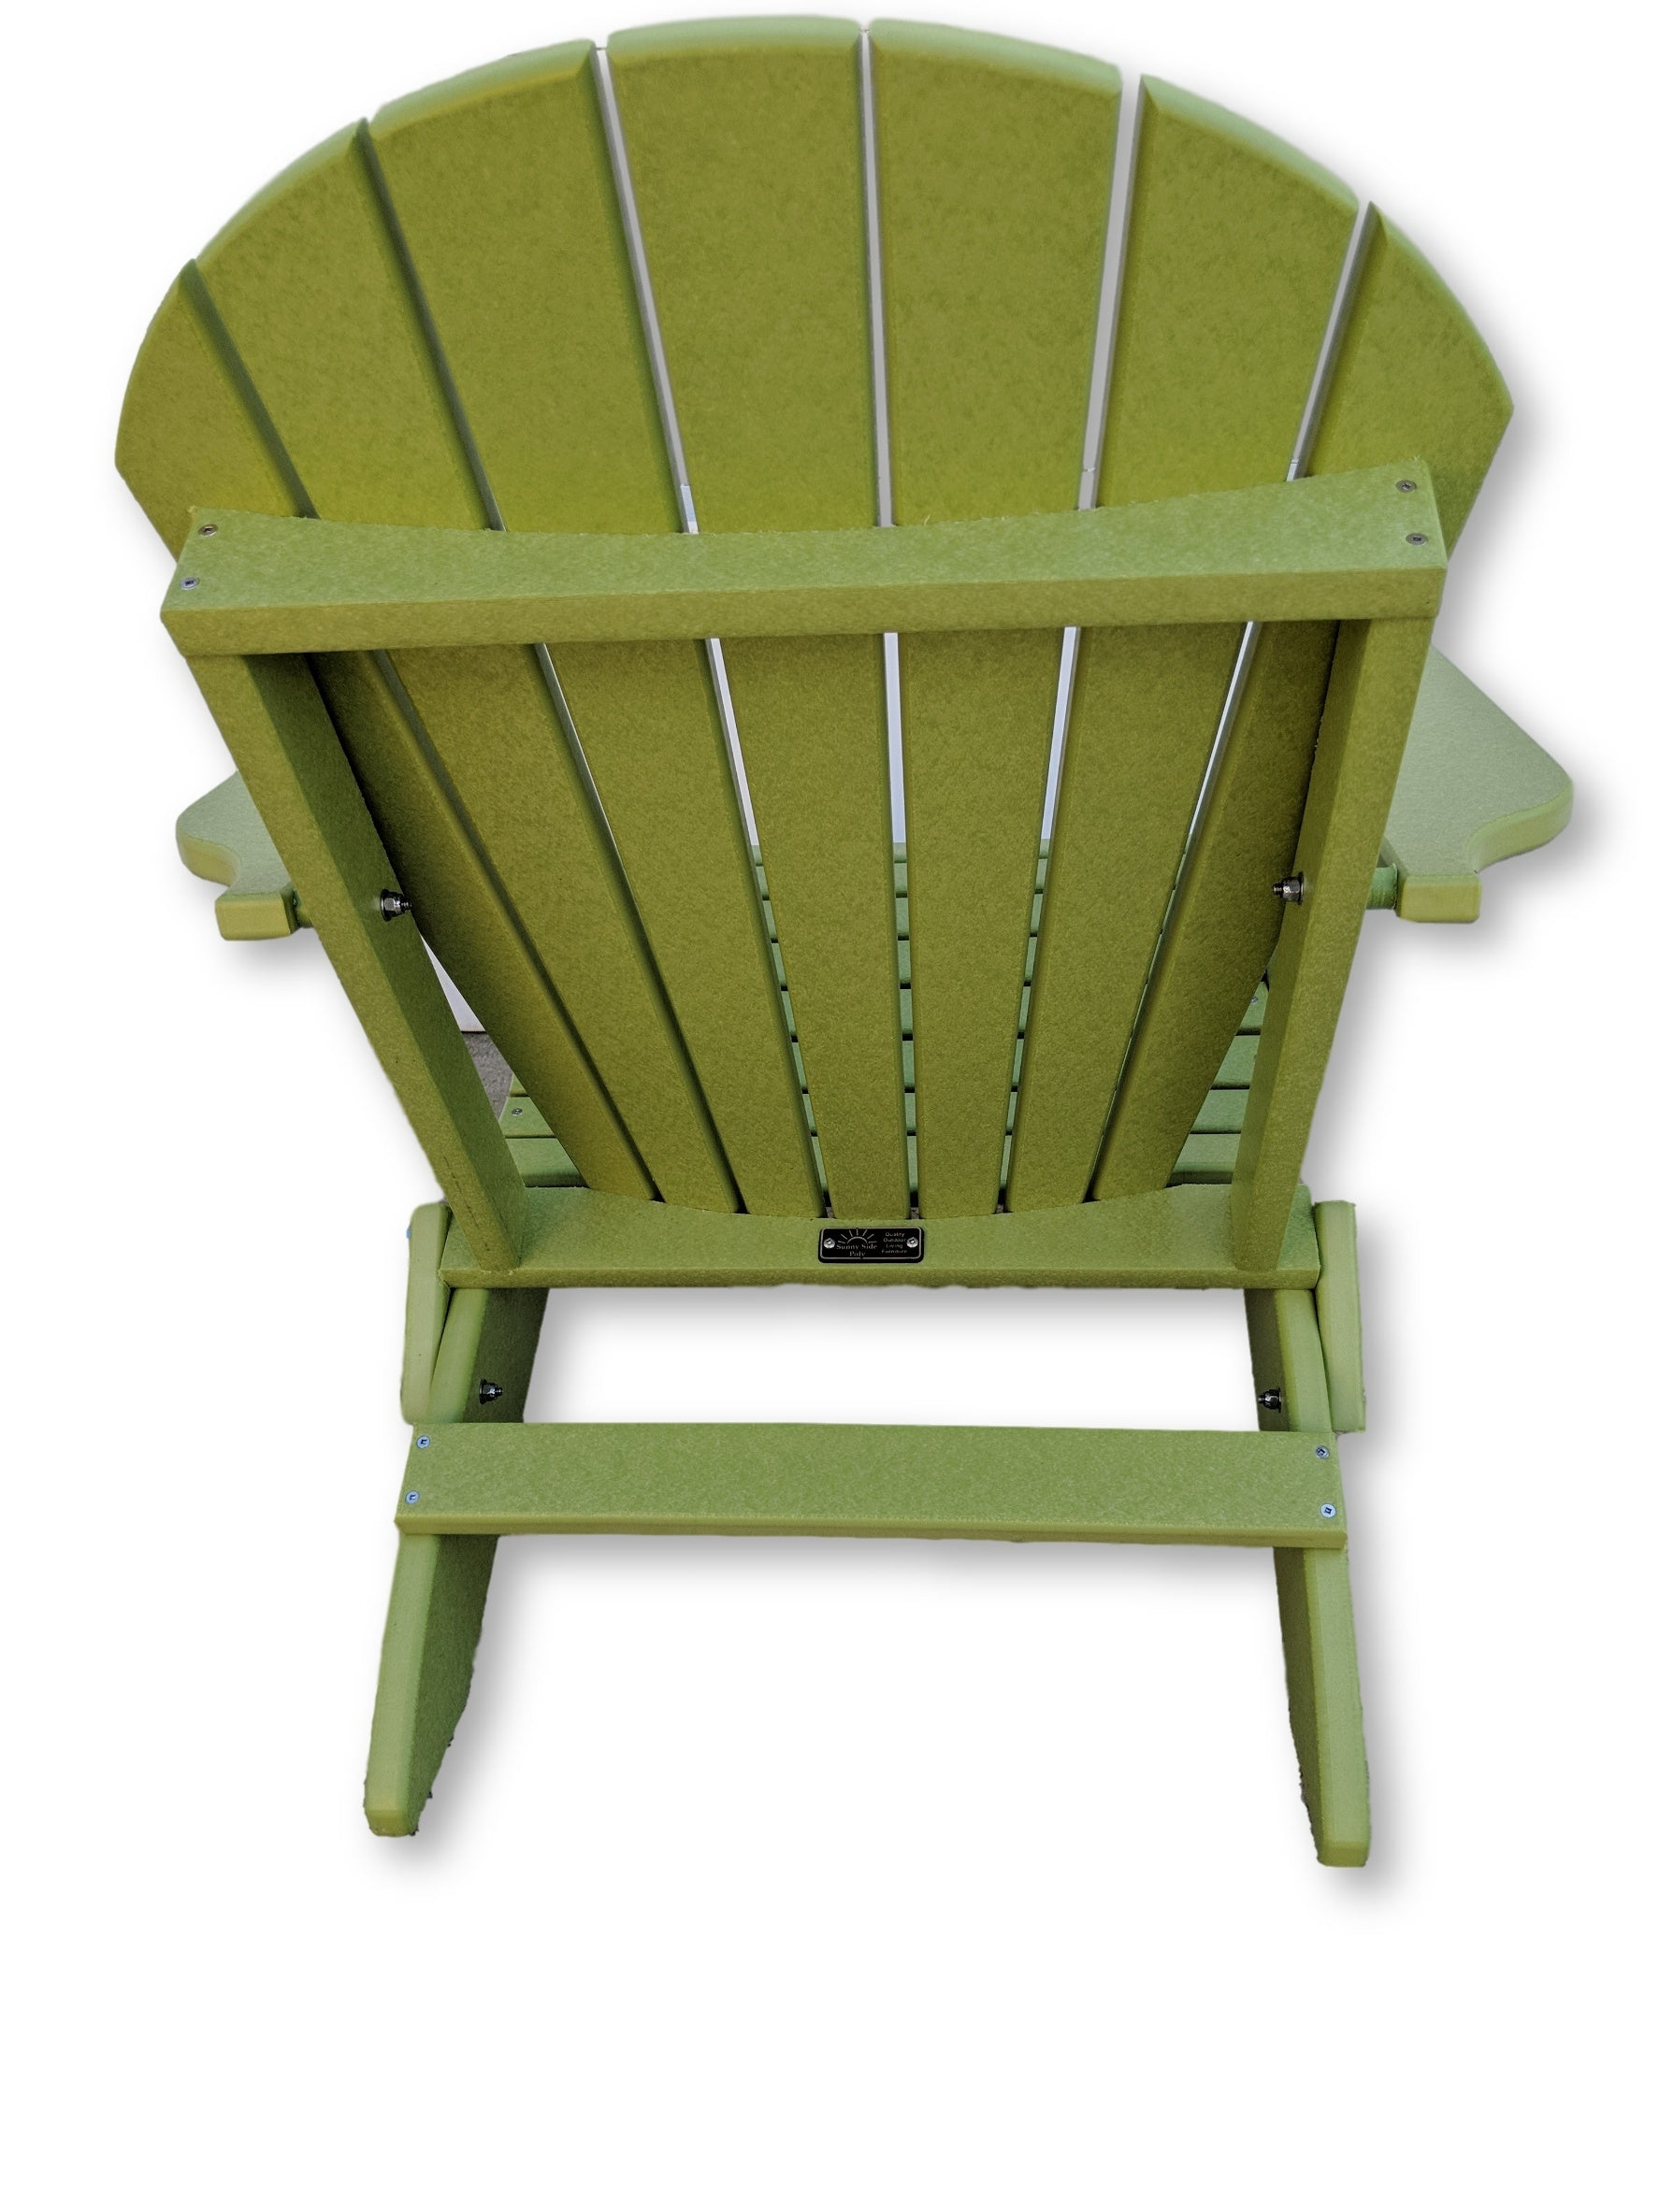 Lime Green Folding Adirondack Chair with Cup Holders